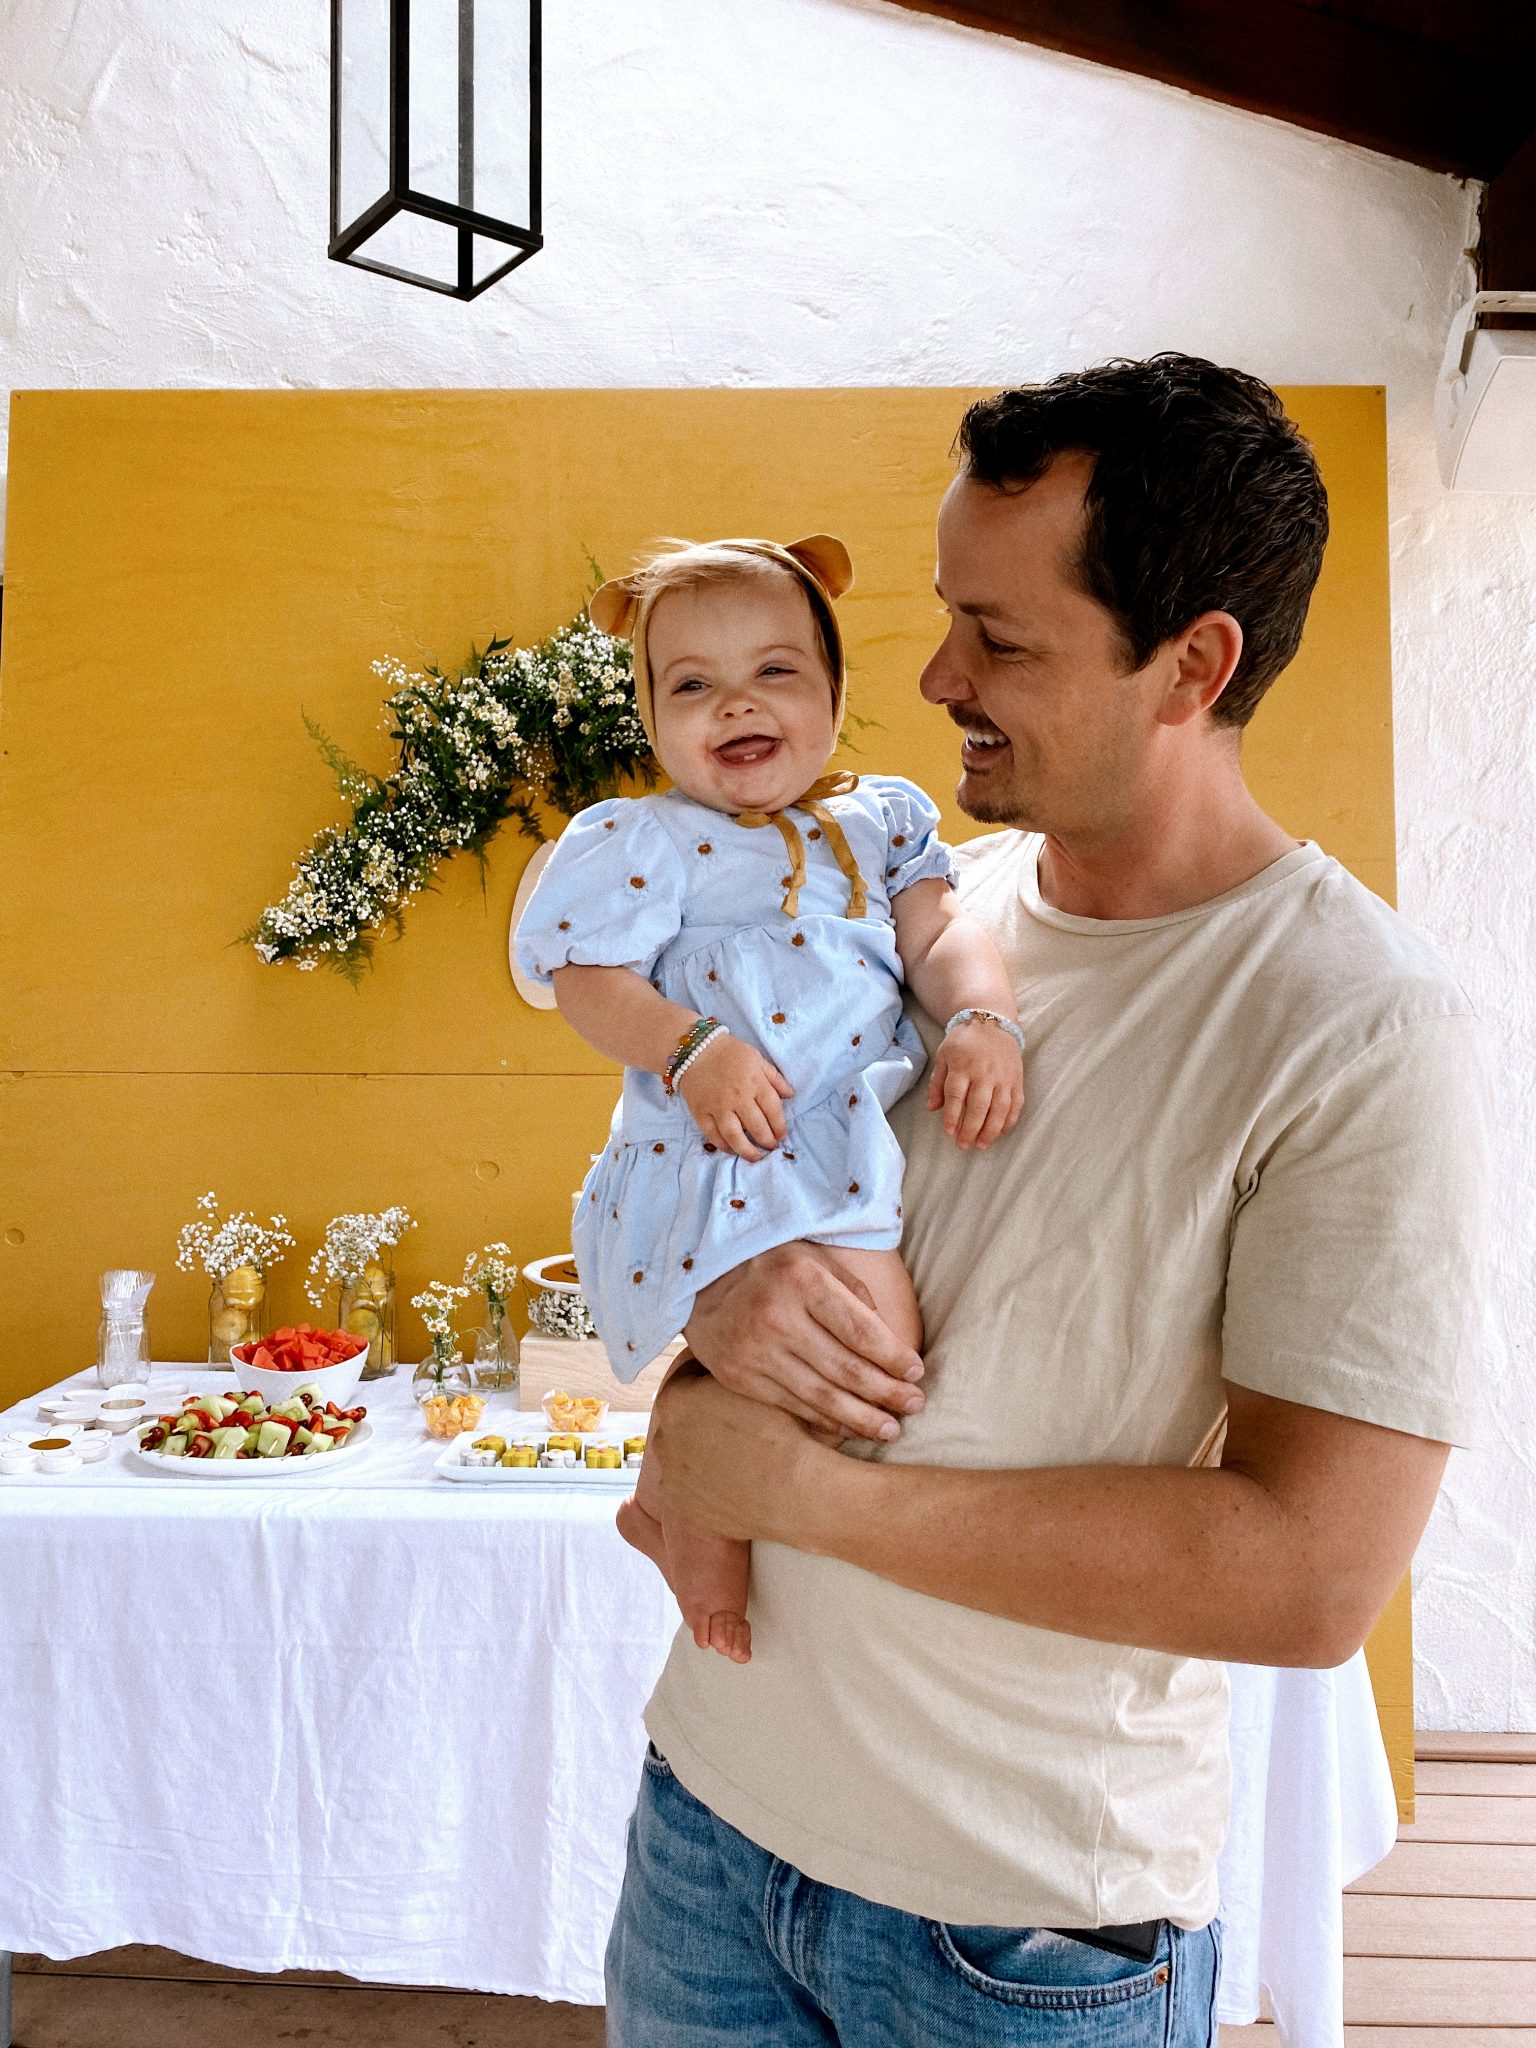 Daisy Theme Party by popular San Diego lifestyle blog, Navy Grace: image of a mustard yellow backdrop, wooden 'one' sign, daisy garland, food table with a cake, daisy shaped cakes, fruit skewers, vases filled with baby's breath and daisies, and daisy cupcakes and a dad holding a one year old baby wearing a blue daisy print Zara dress and Briar Baby Honey Bear bonnet.